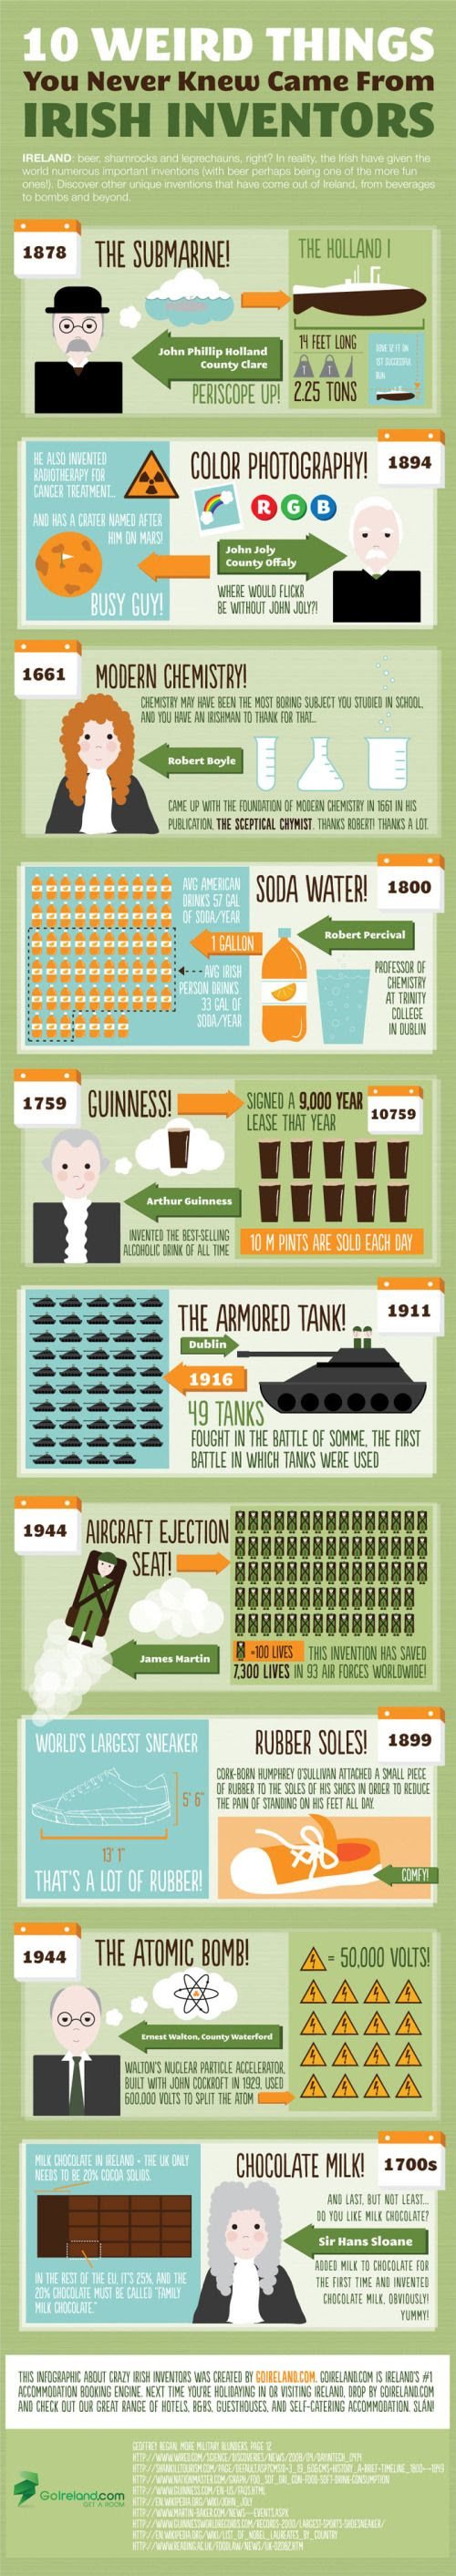 10 Irish Inventions that Chang